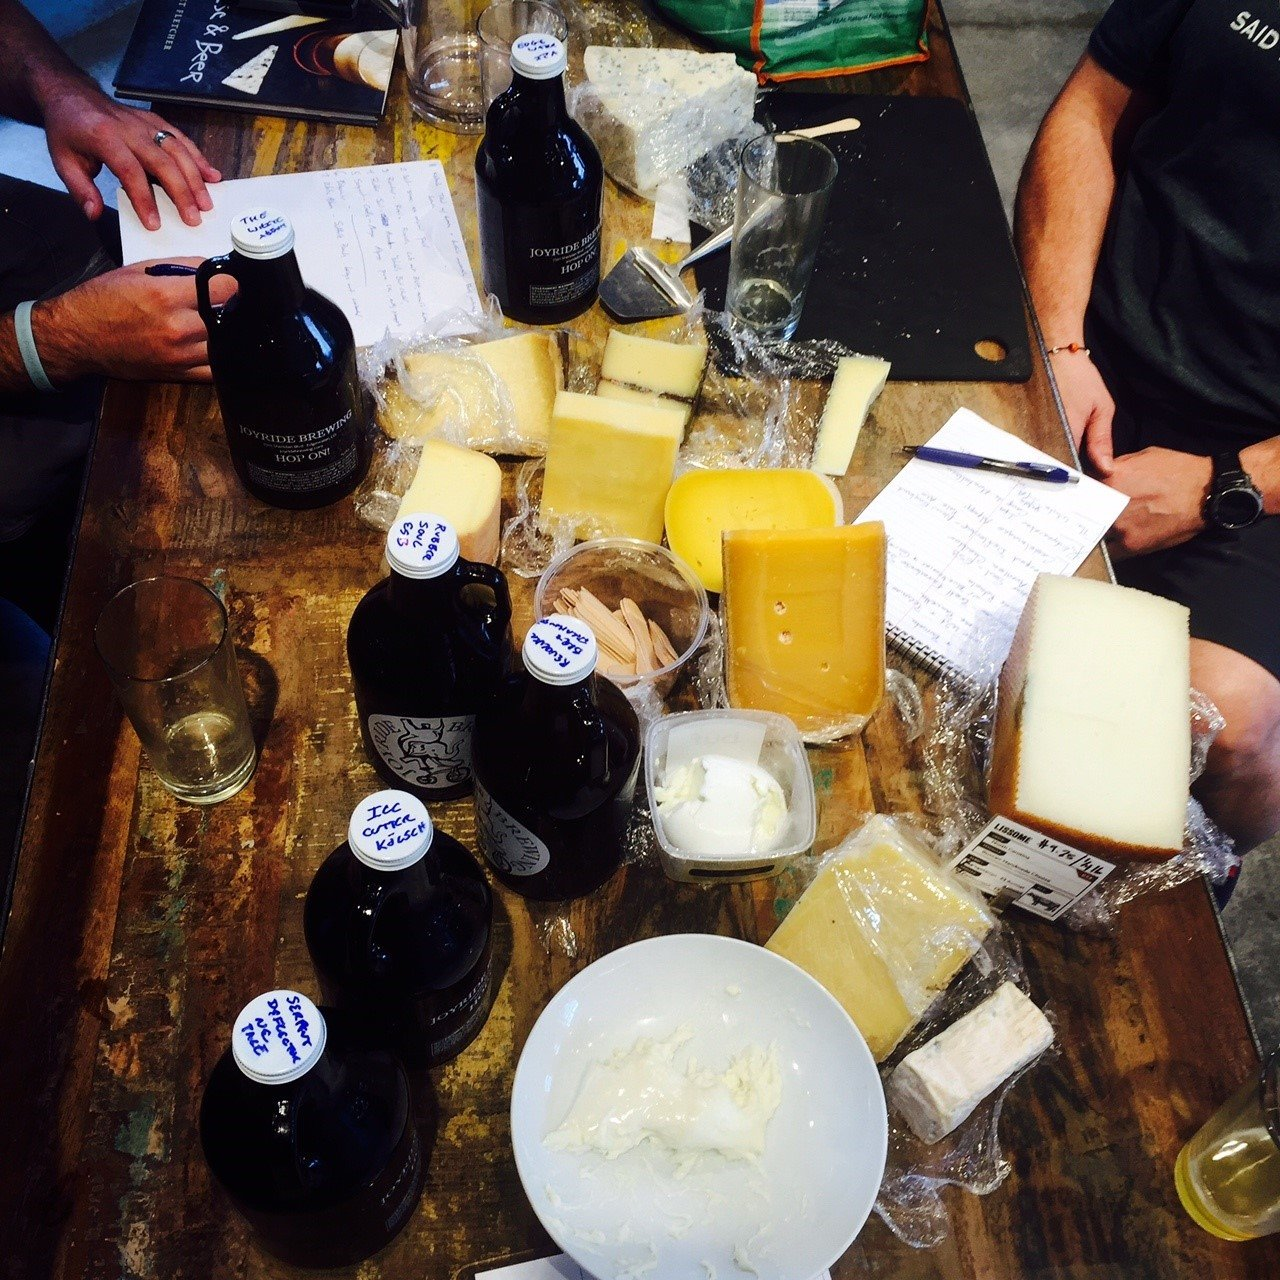 Prepping for the Cheese + Provision's class. Photo courtesy of Cheese + Provisions Facebook